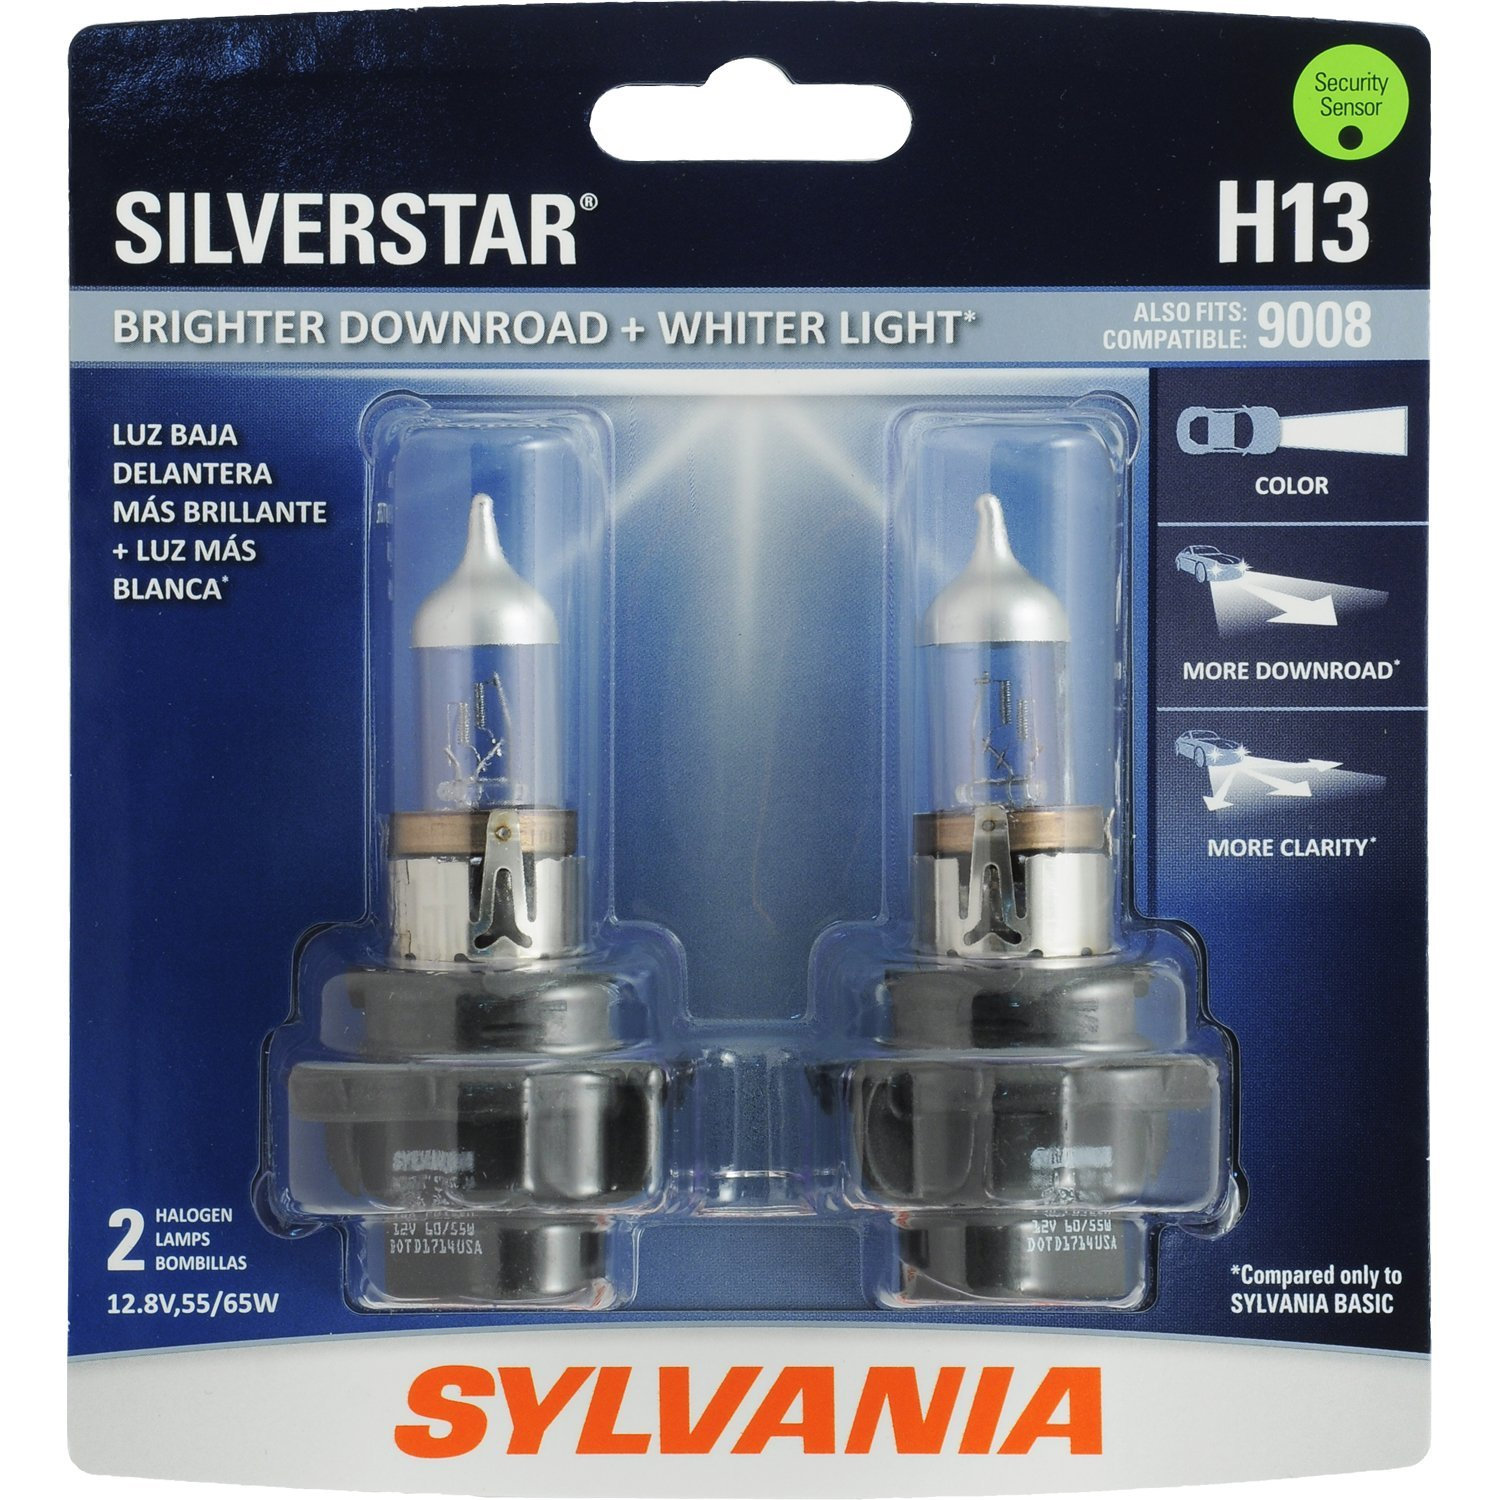 H13 SilverStar High Performance Halogen Headlight Bulb, (Contains 2 Bulbs) By Sylvania Ship from US